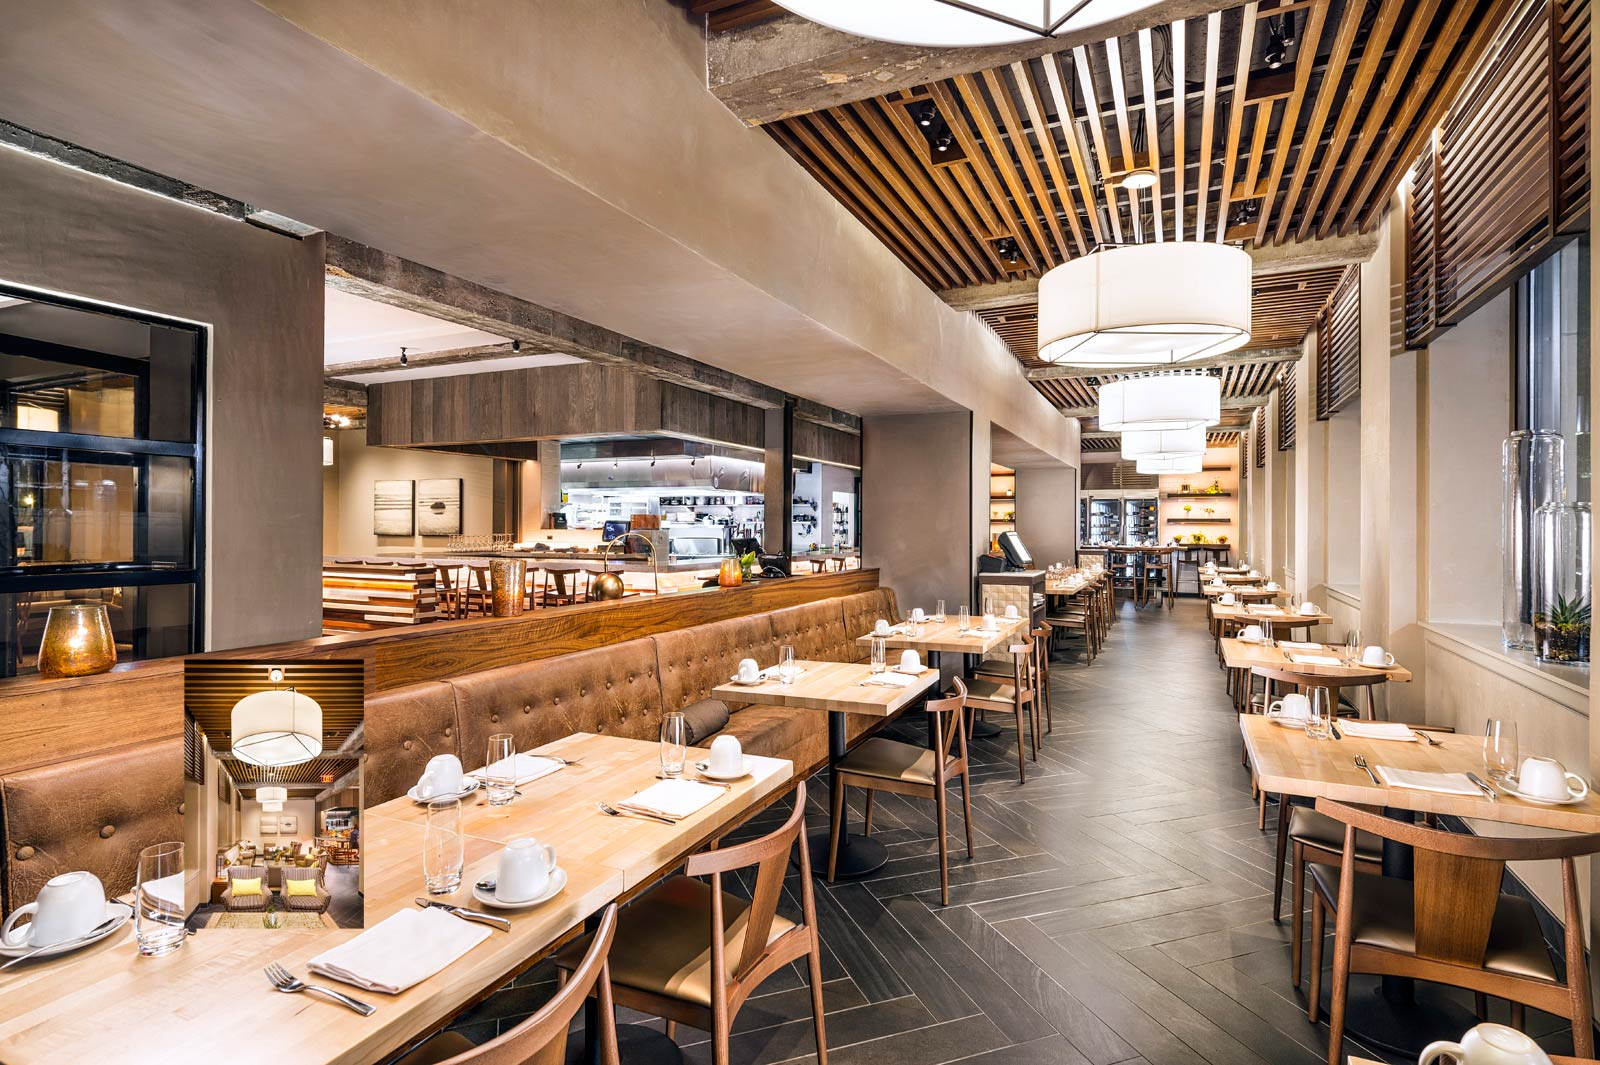 Bumble's new restaurant, bumble brew in new york city, only serves date